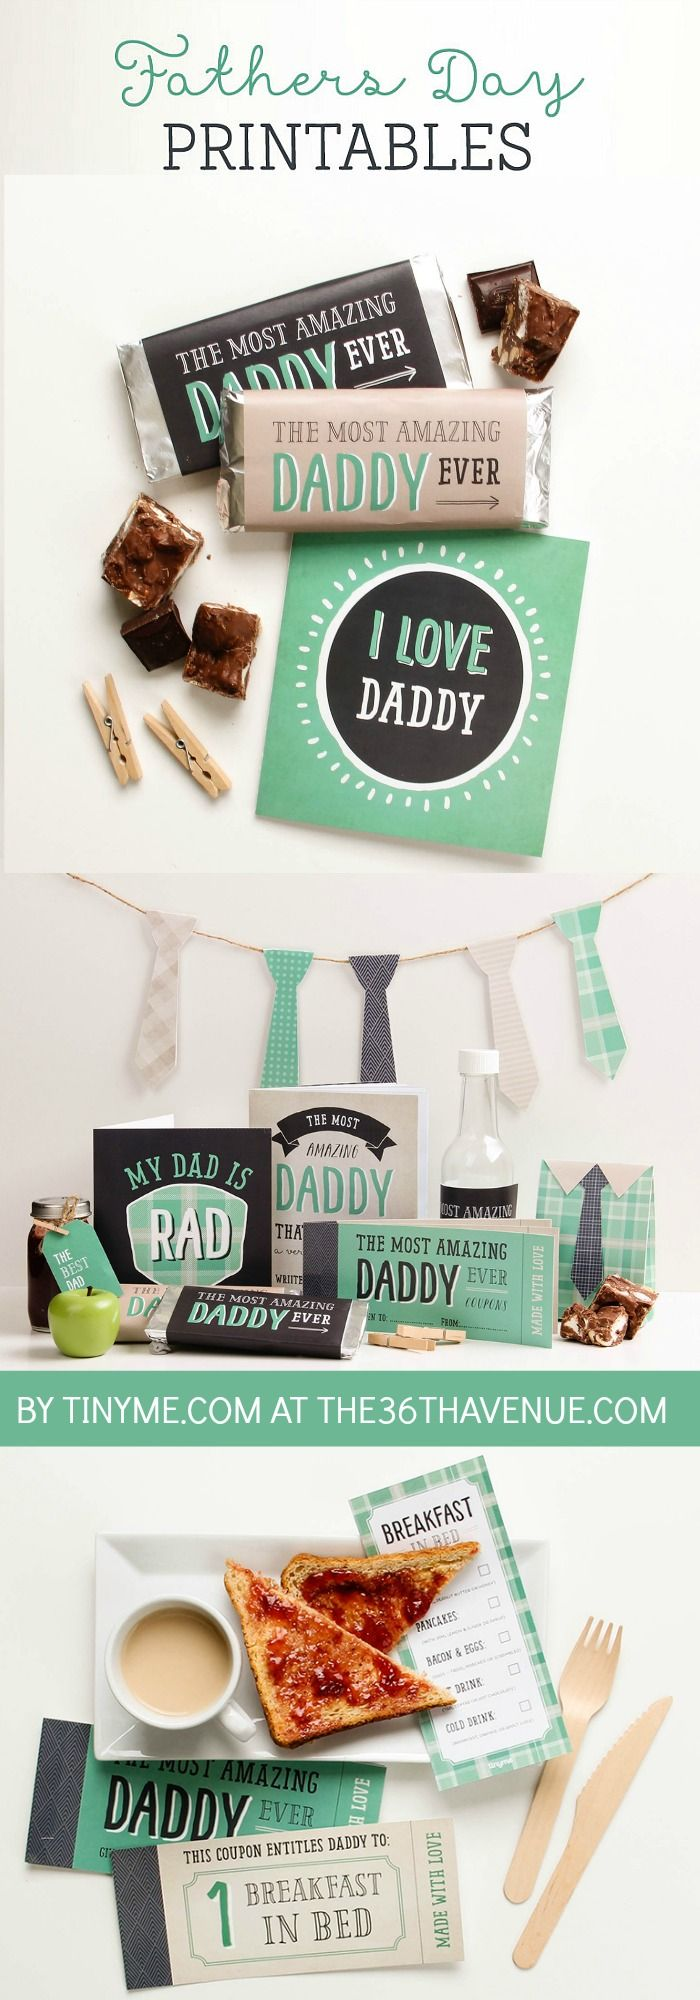 Father's Day Free Printables and Gift Idea by tinyme.com at the36thavenue.com